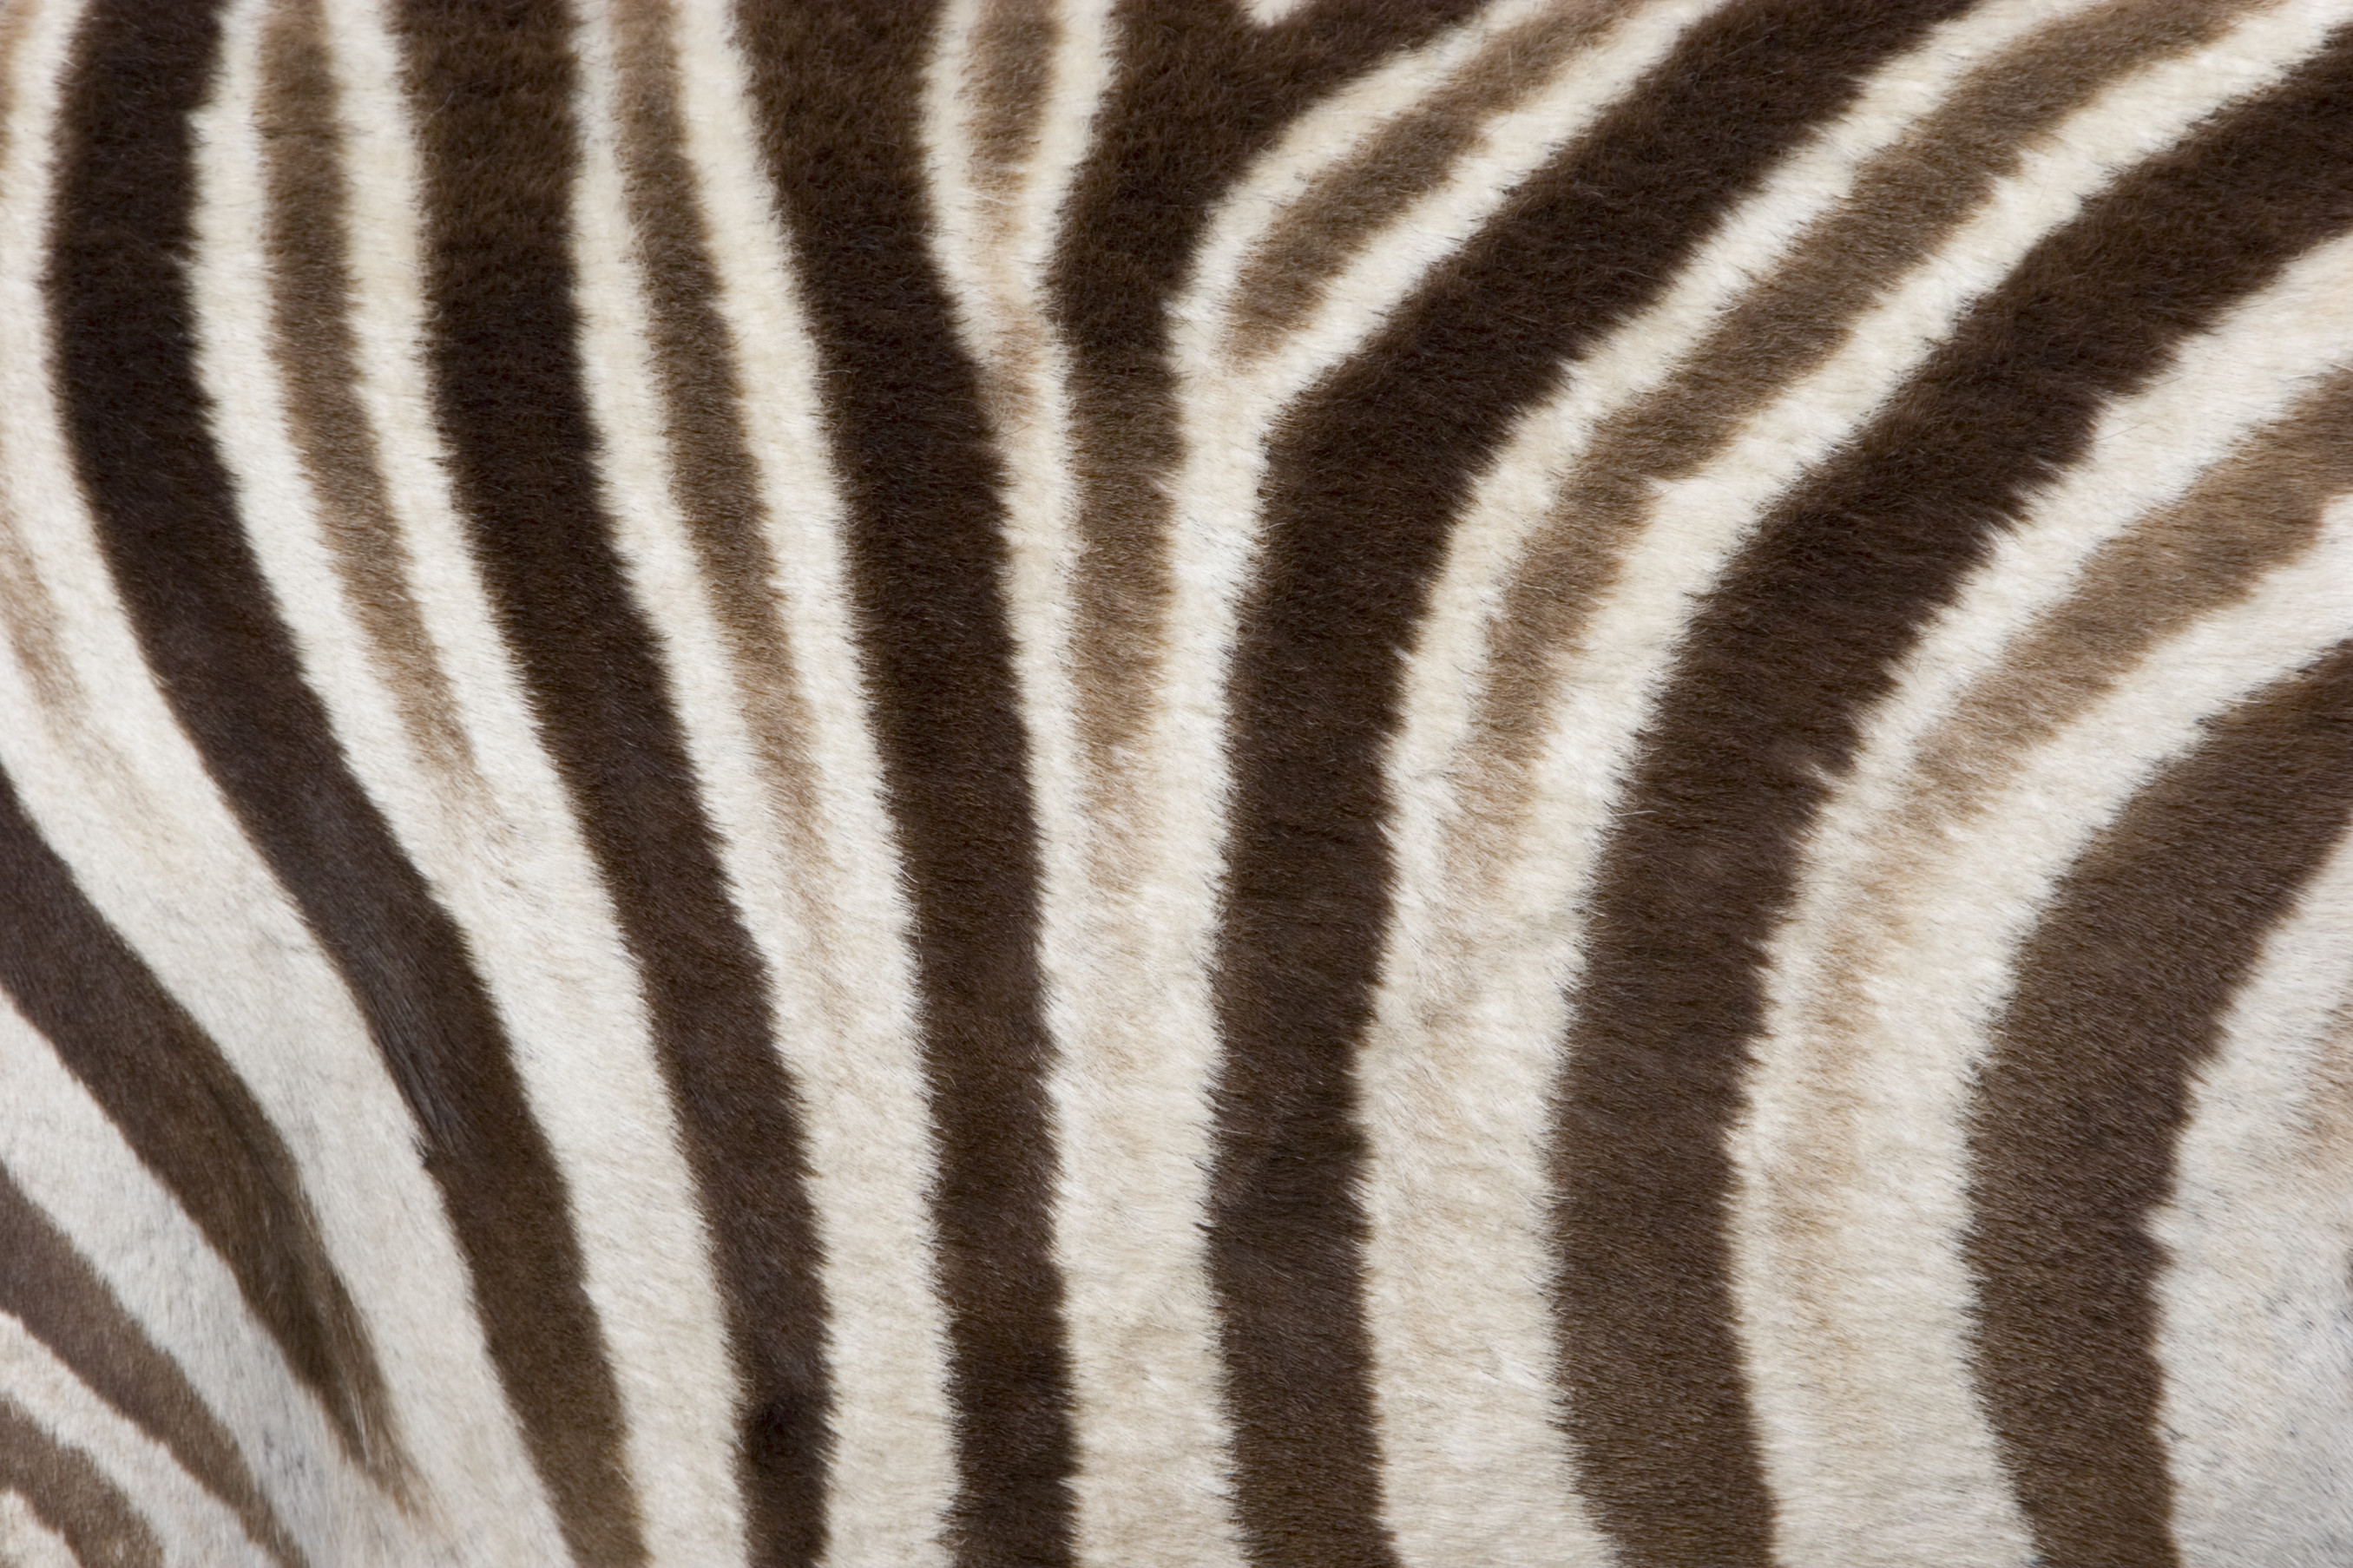 zebra skin wallpaper